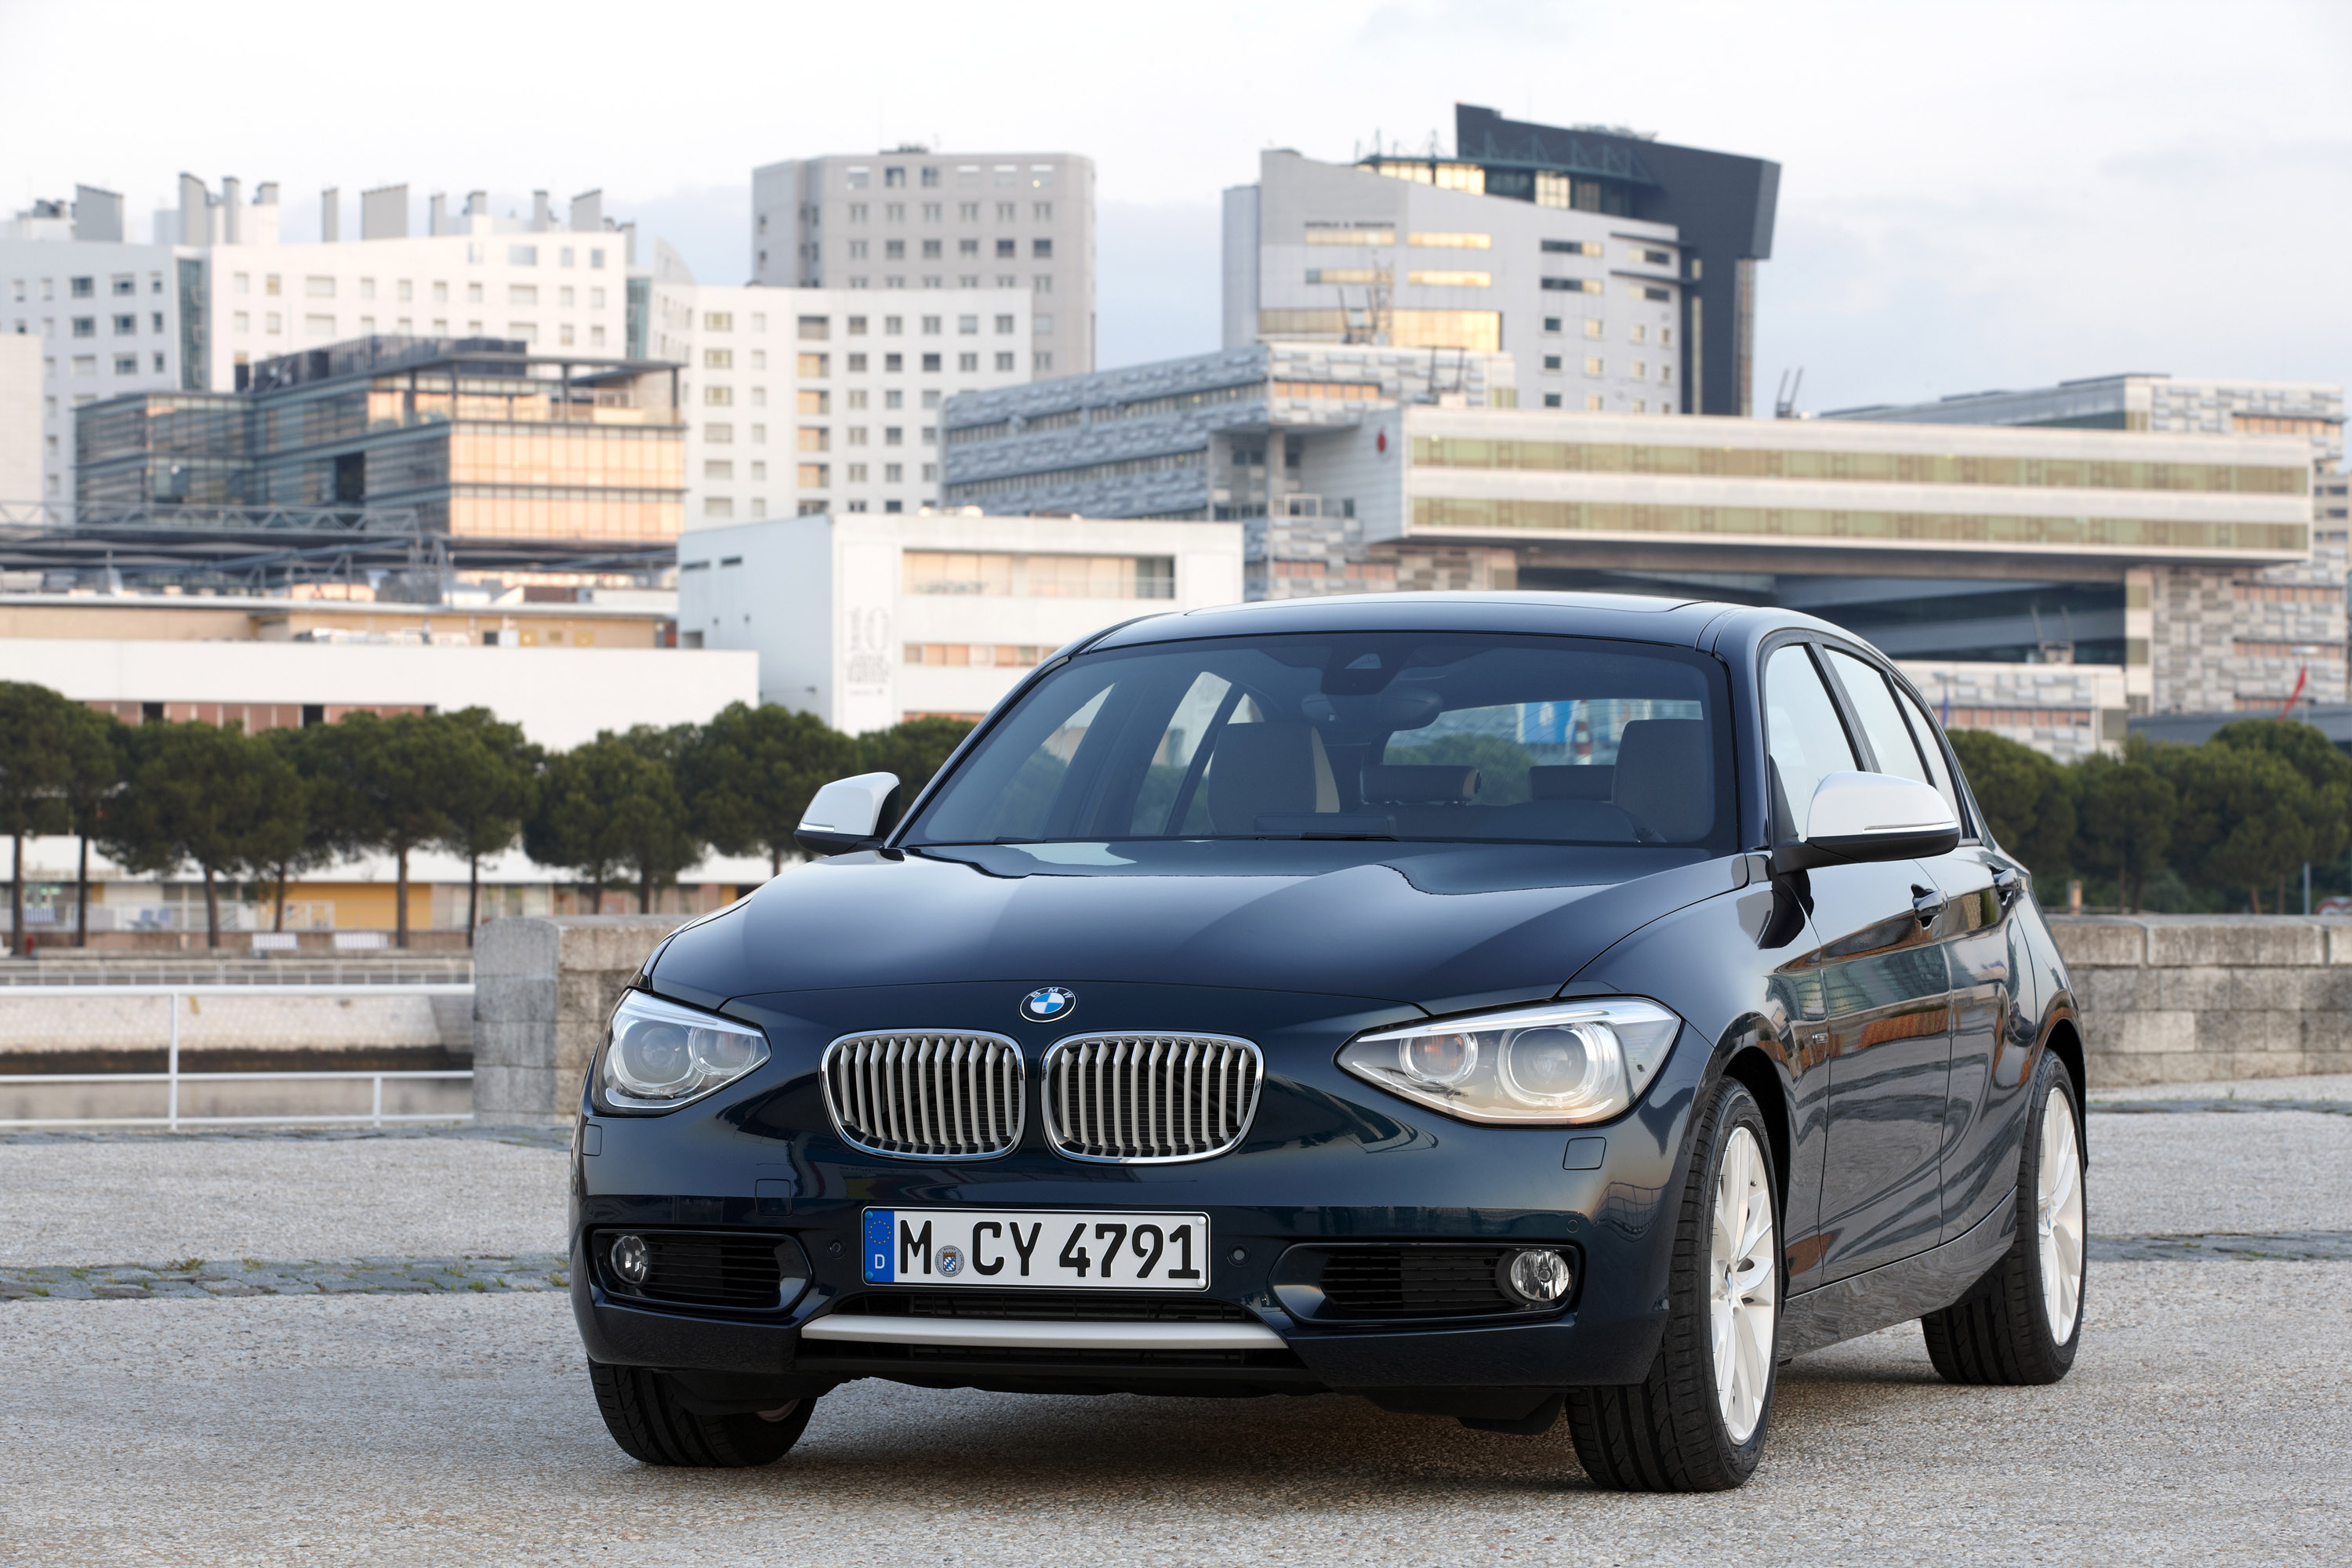 2012 Bmw 1 Series Picture 54916